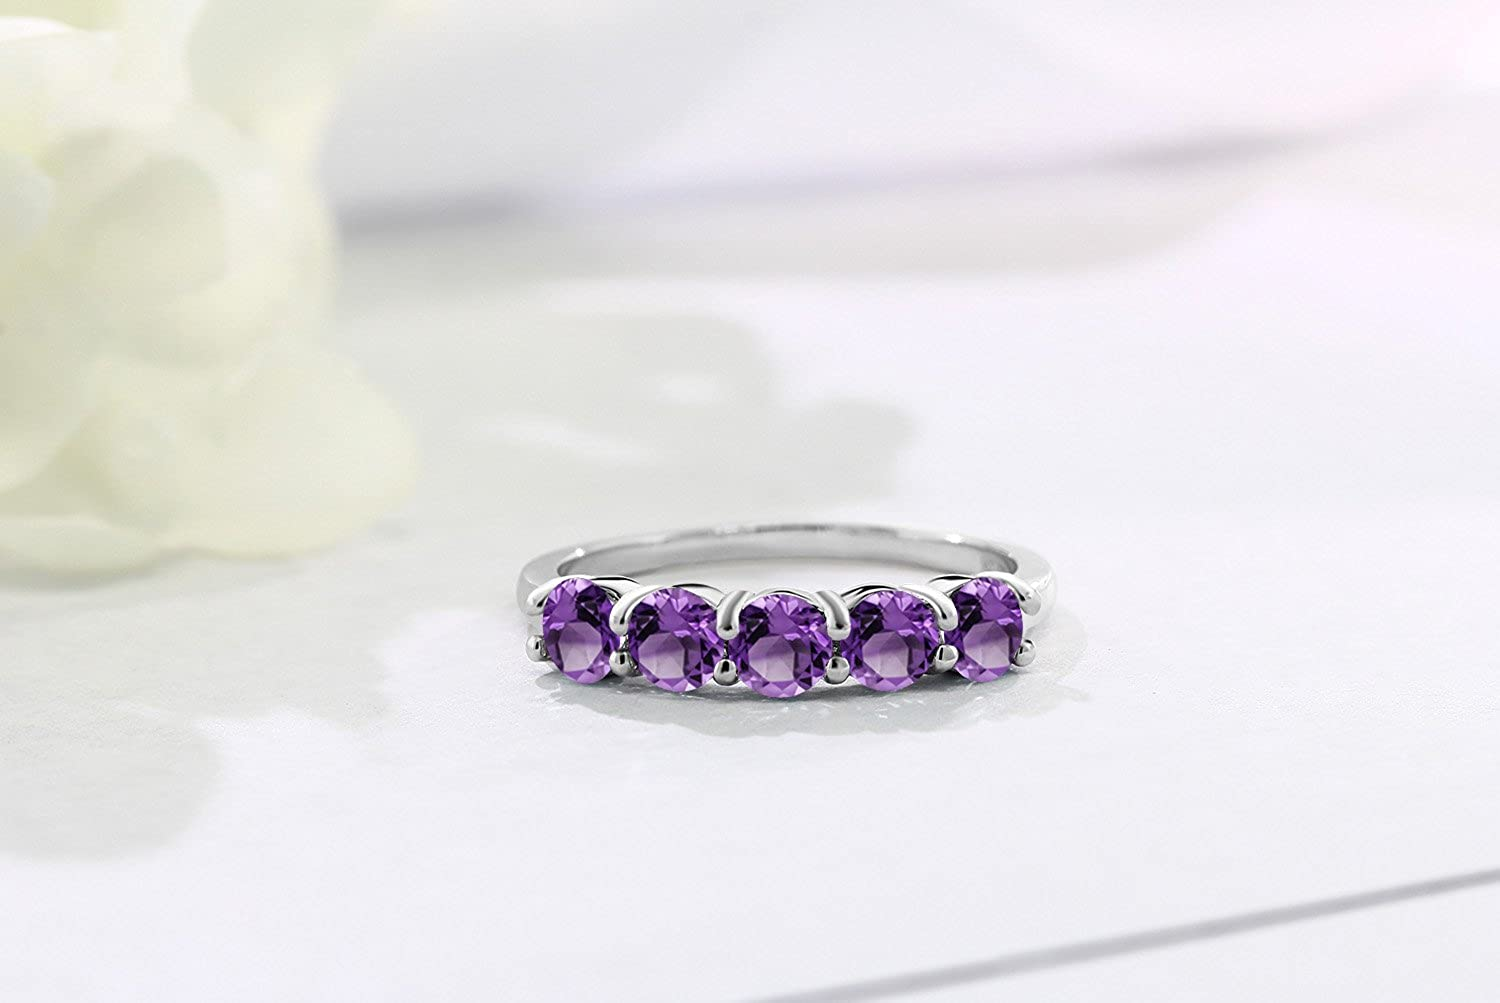 9 Grams Rings Band With Stone Gifts for Women Boho Hippie Jewelry Sale .925 Purple Amethyst Faceted Gemstone Ring Size 6 Sterling Silver